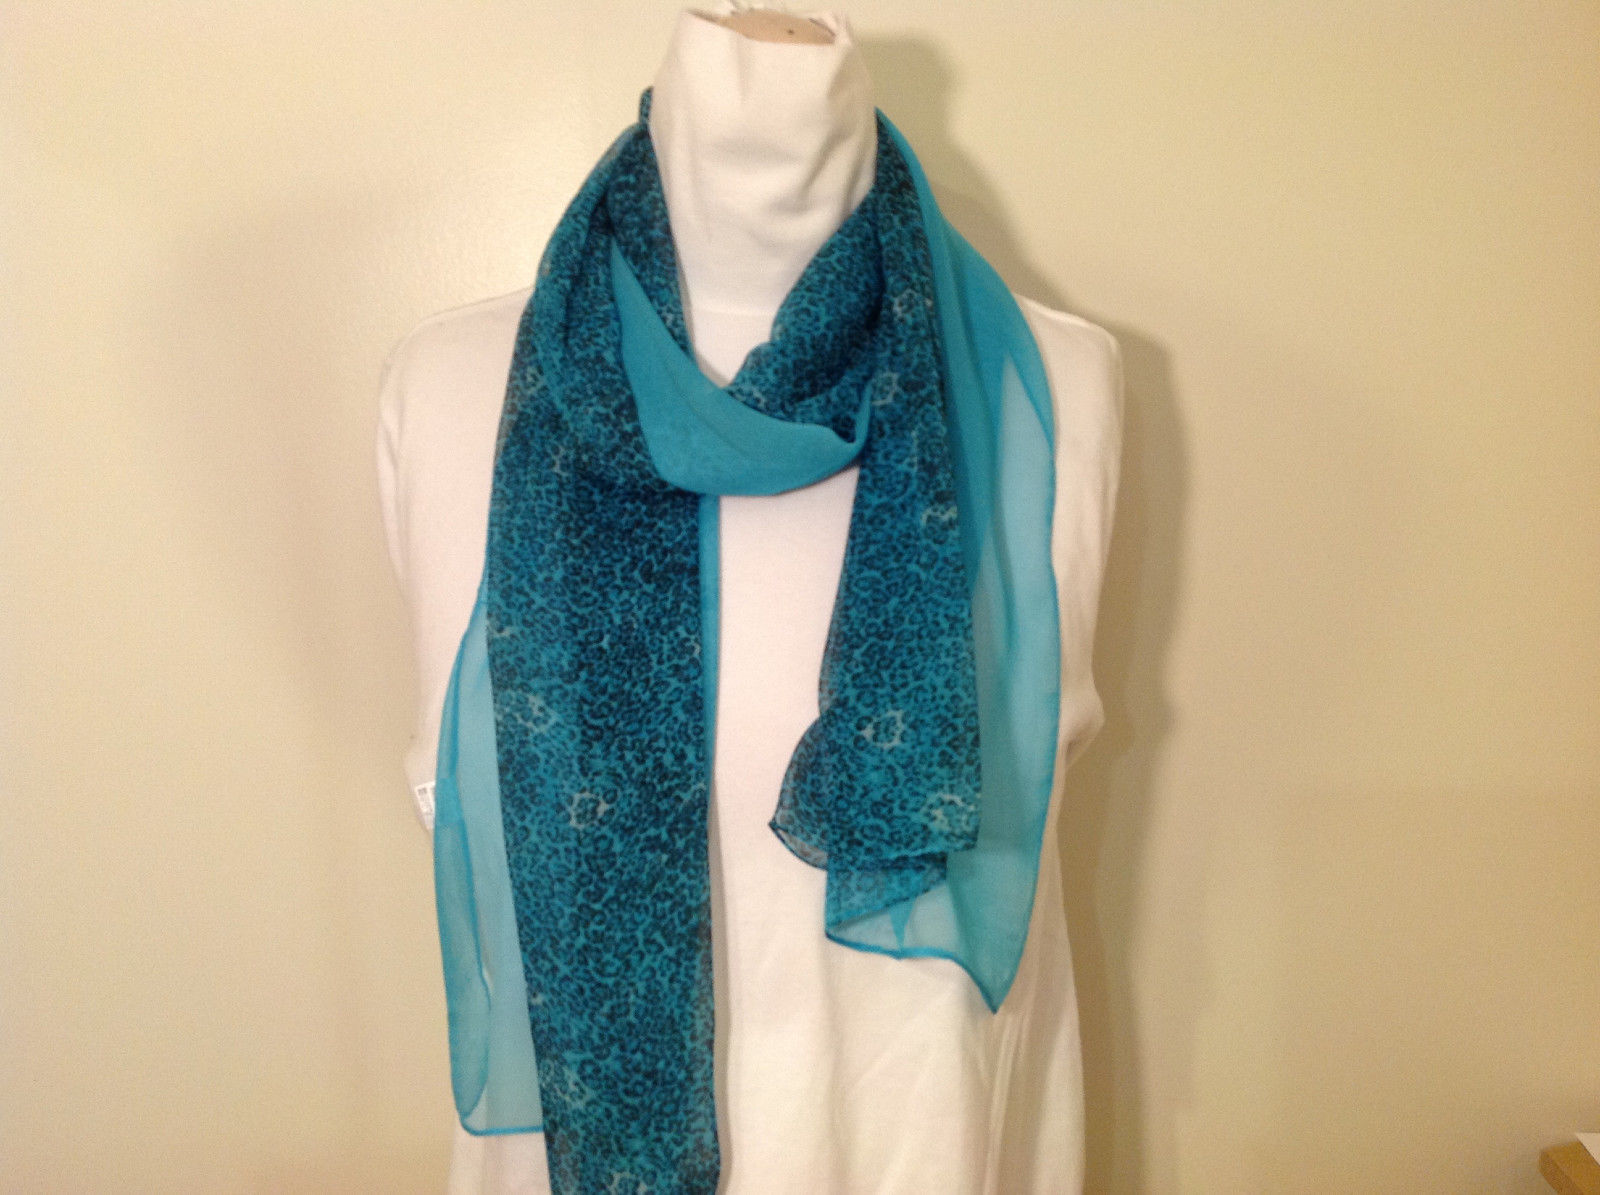 Leopard print Summer Sheer fabric Scarf, in choice of bright color